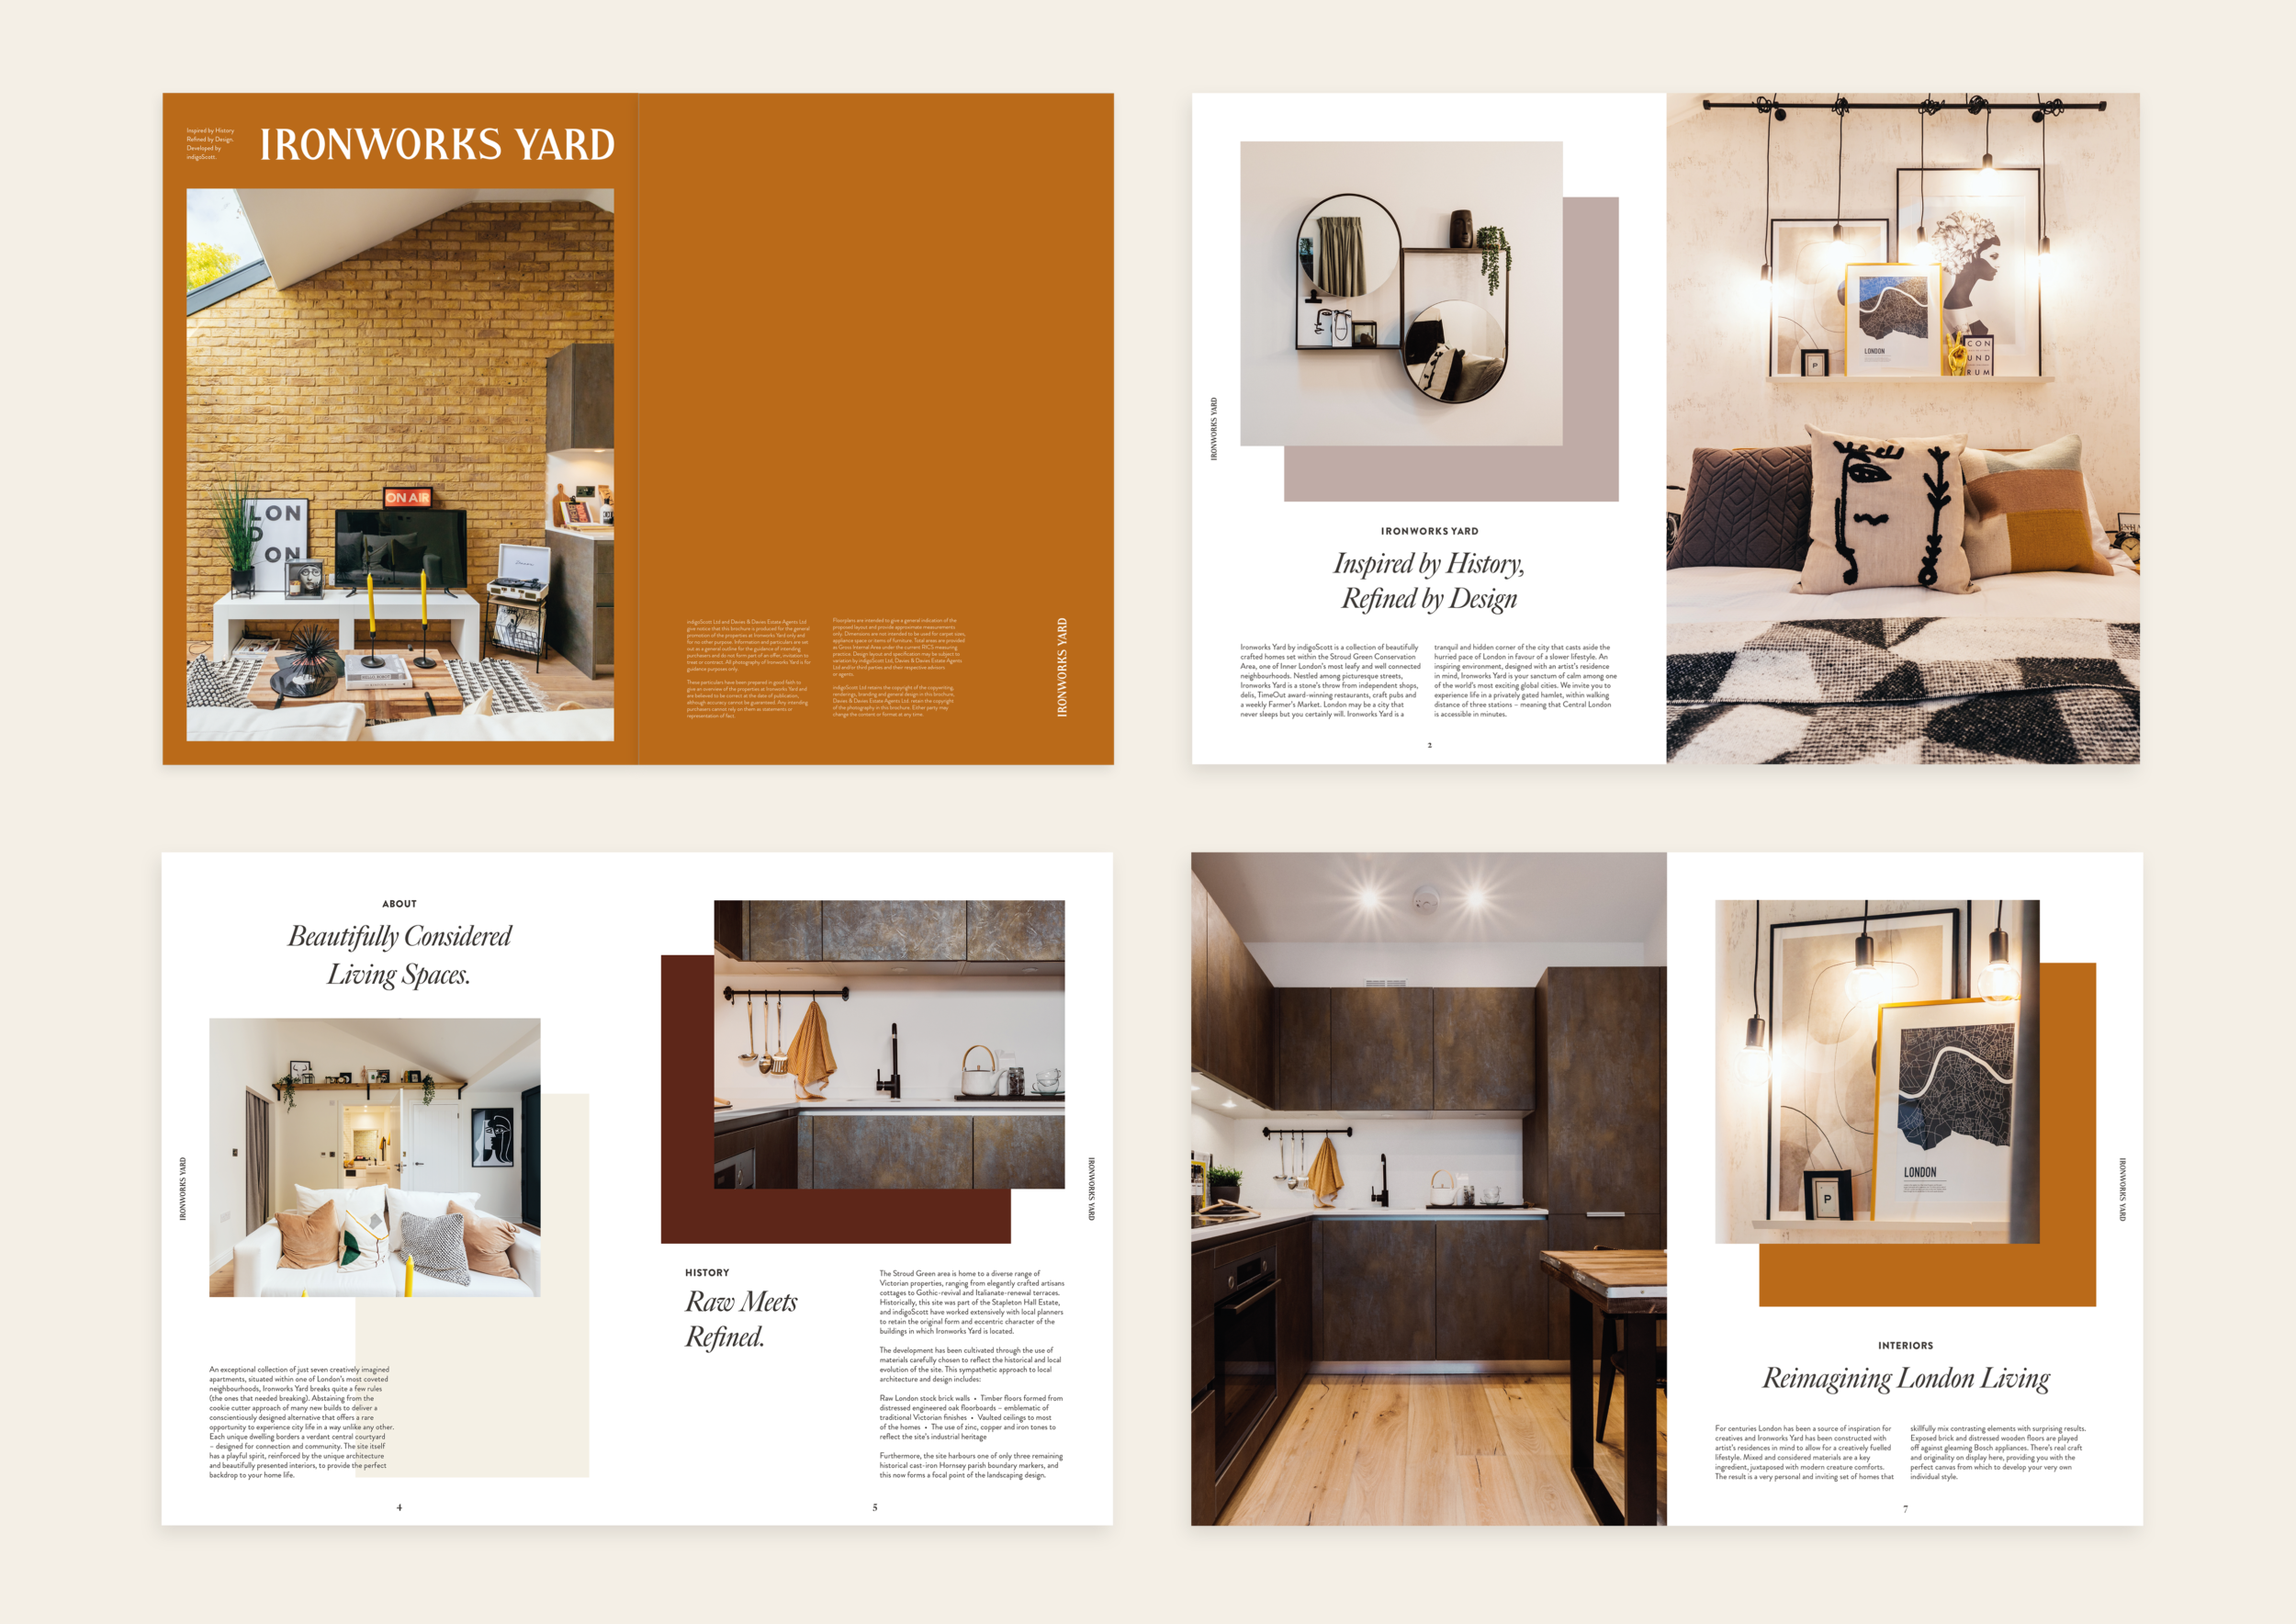 Brochure layout spread for the Ironworks Yard development.